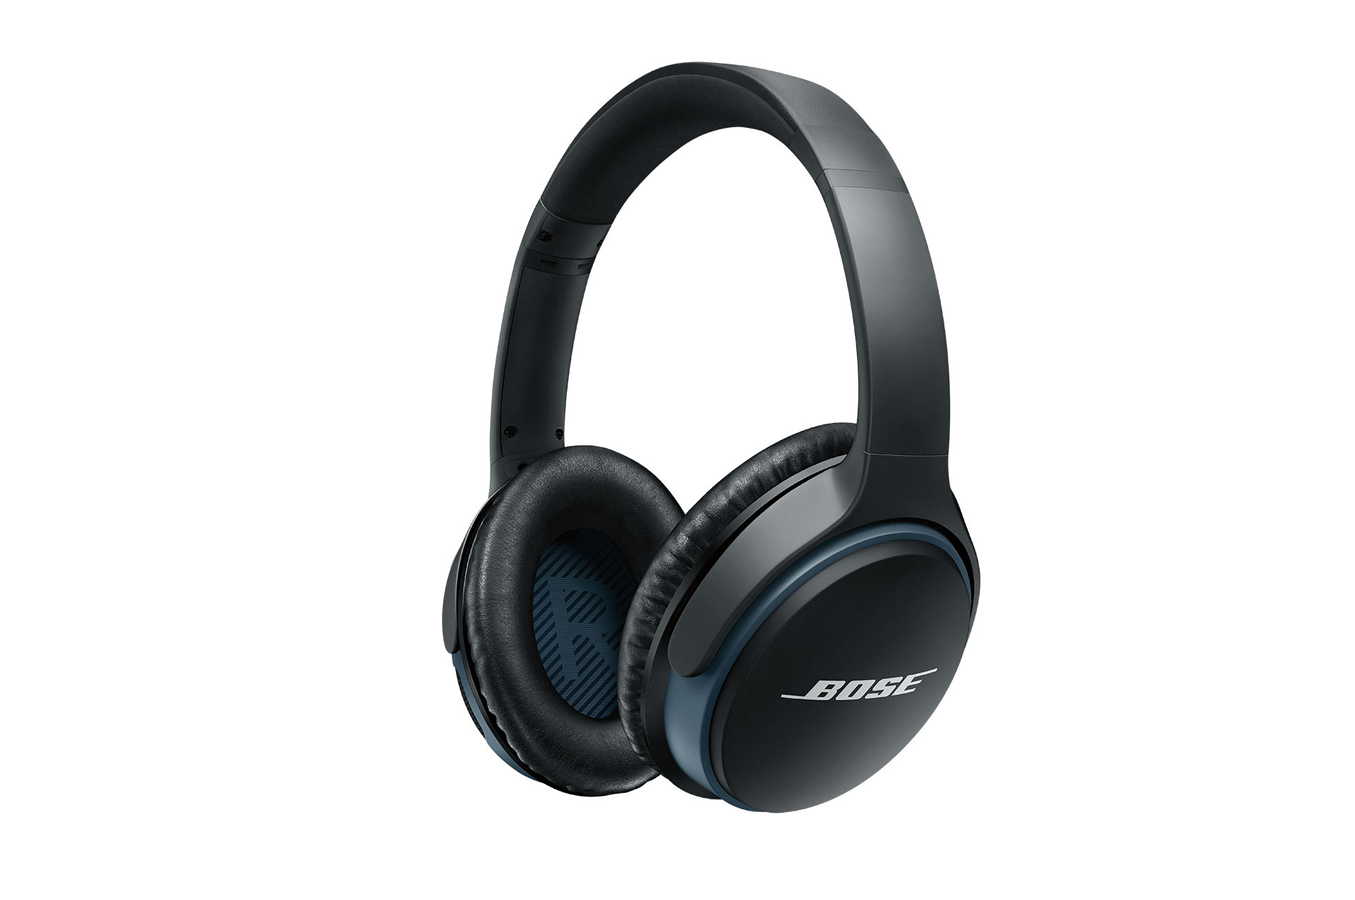 casque audio bose soundlink ii bluetooth noir 4141075. Black Bedroom Furniture Sets. Home Design Ideas